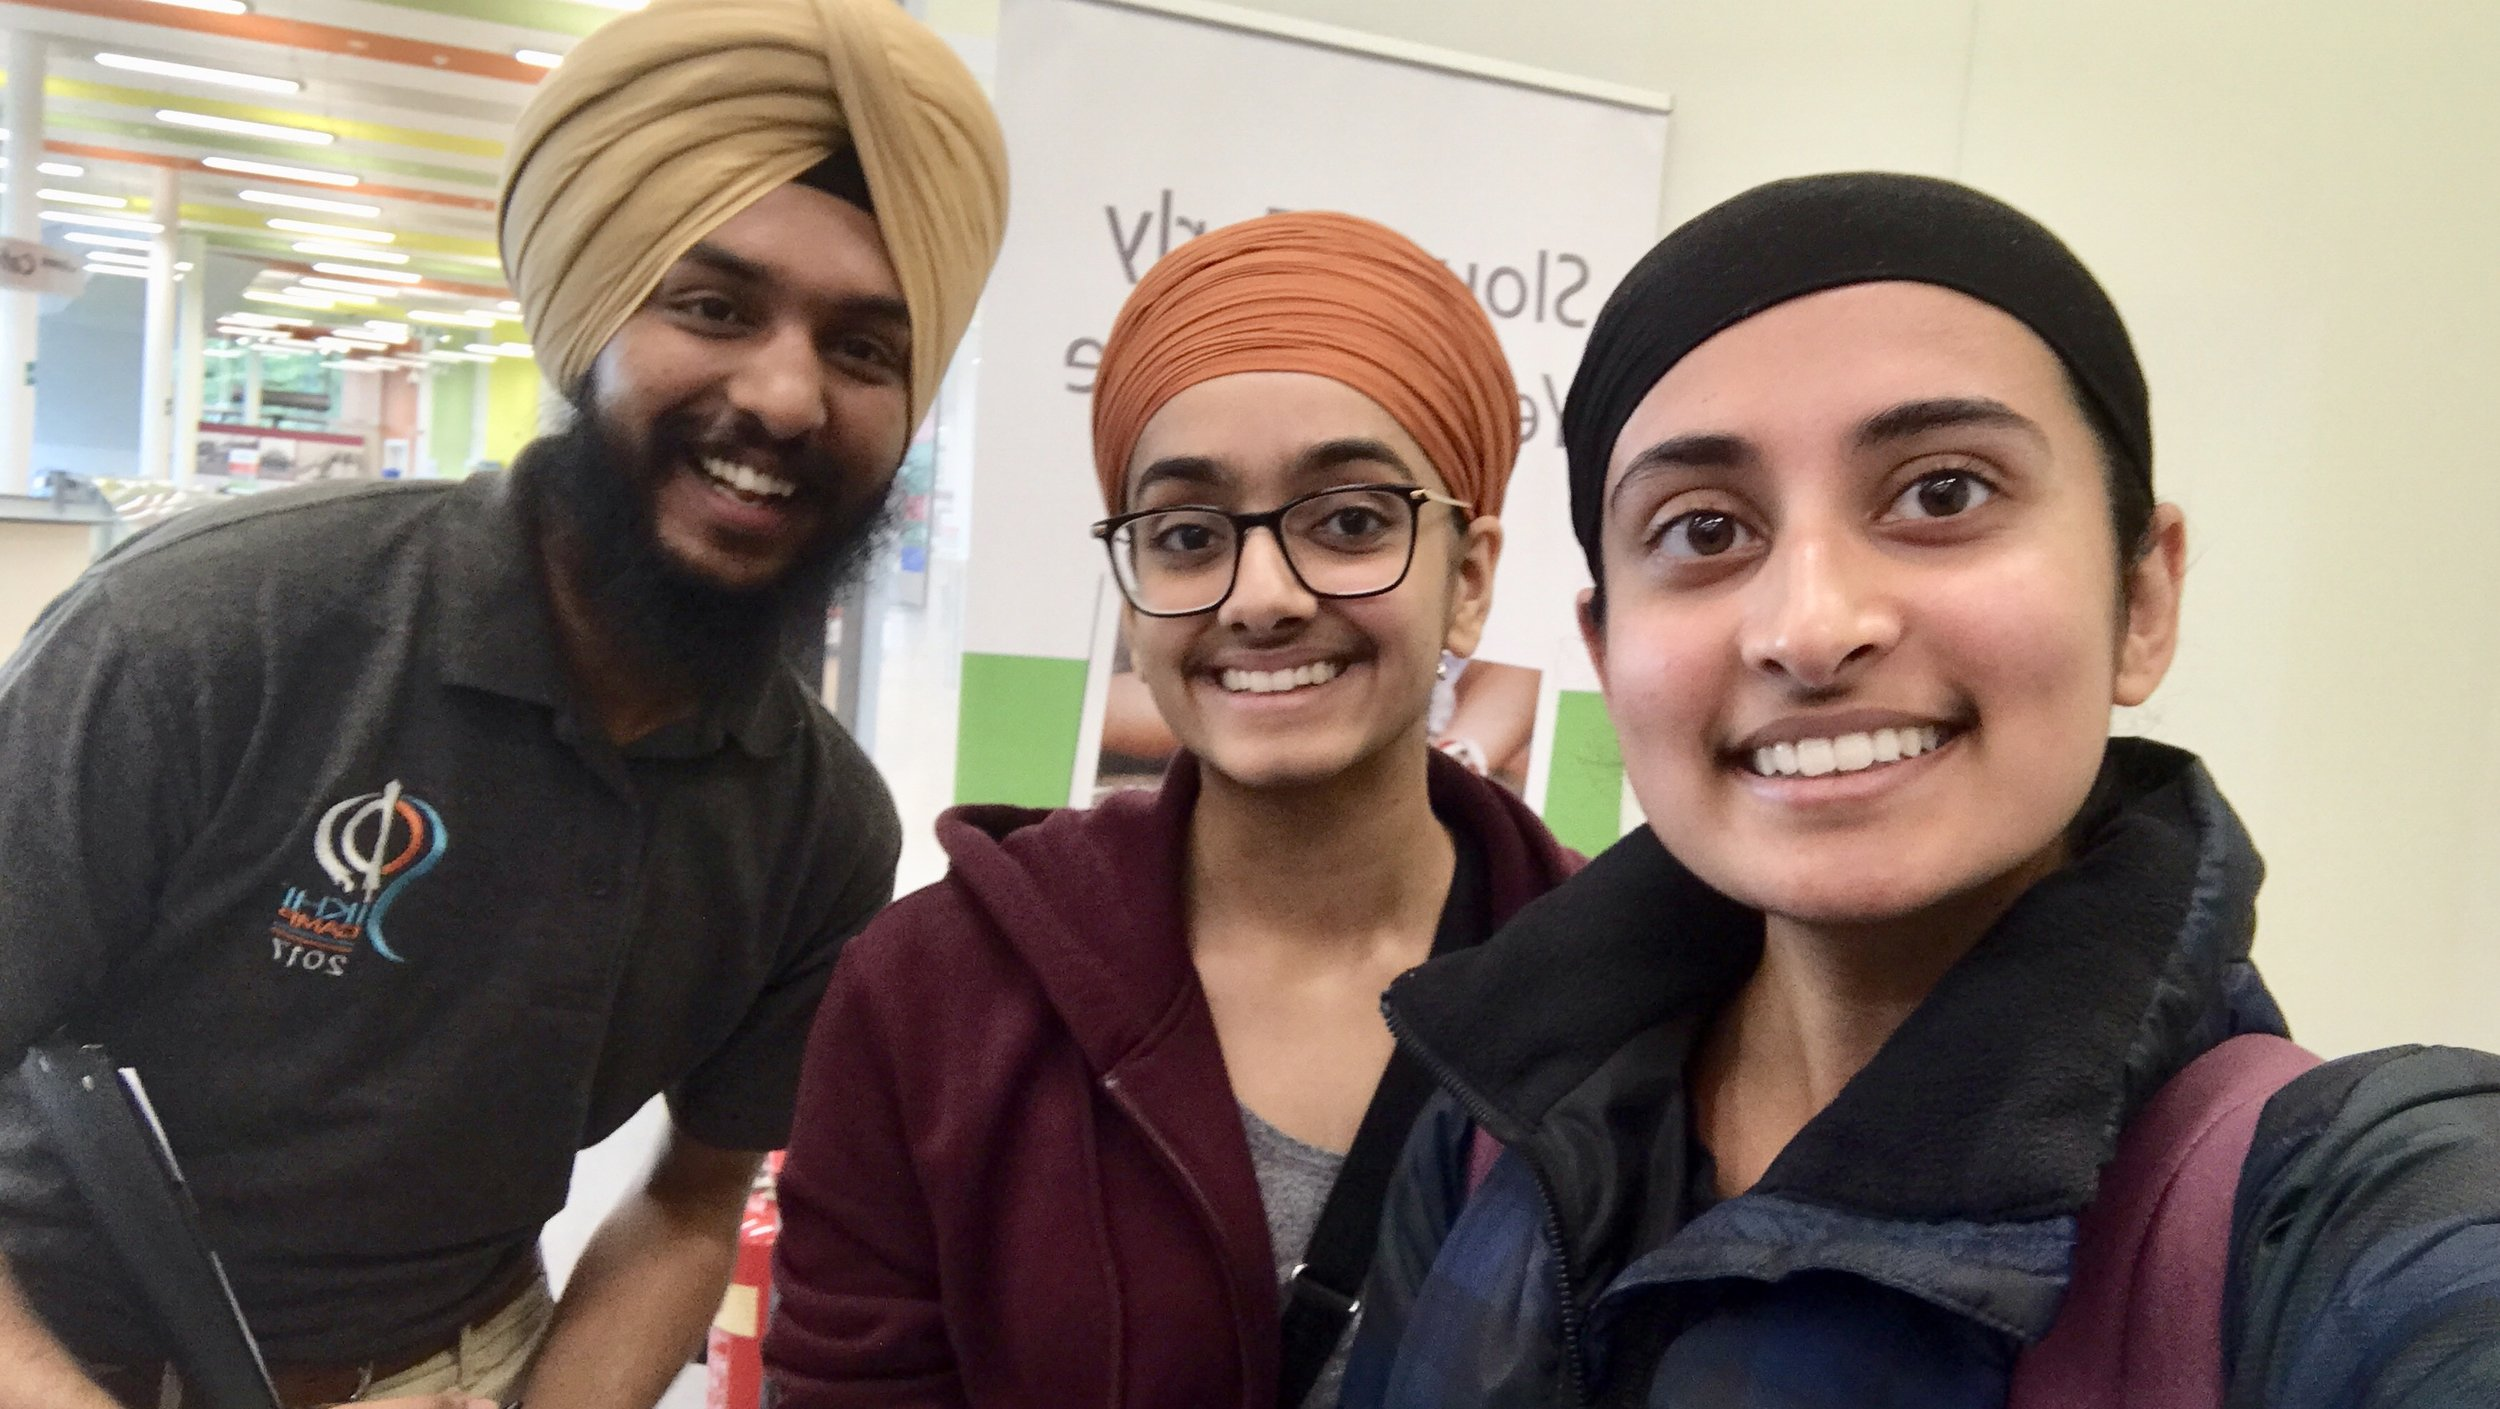 Jaspreet Singh at the premiere in Slough on Sunday 9th June 2019 alongside Jaskeerut Kaur (Birmingham City University) and Caren Kaur (King's College London).